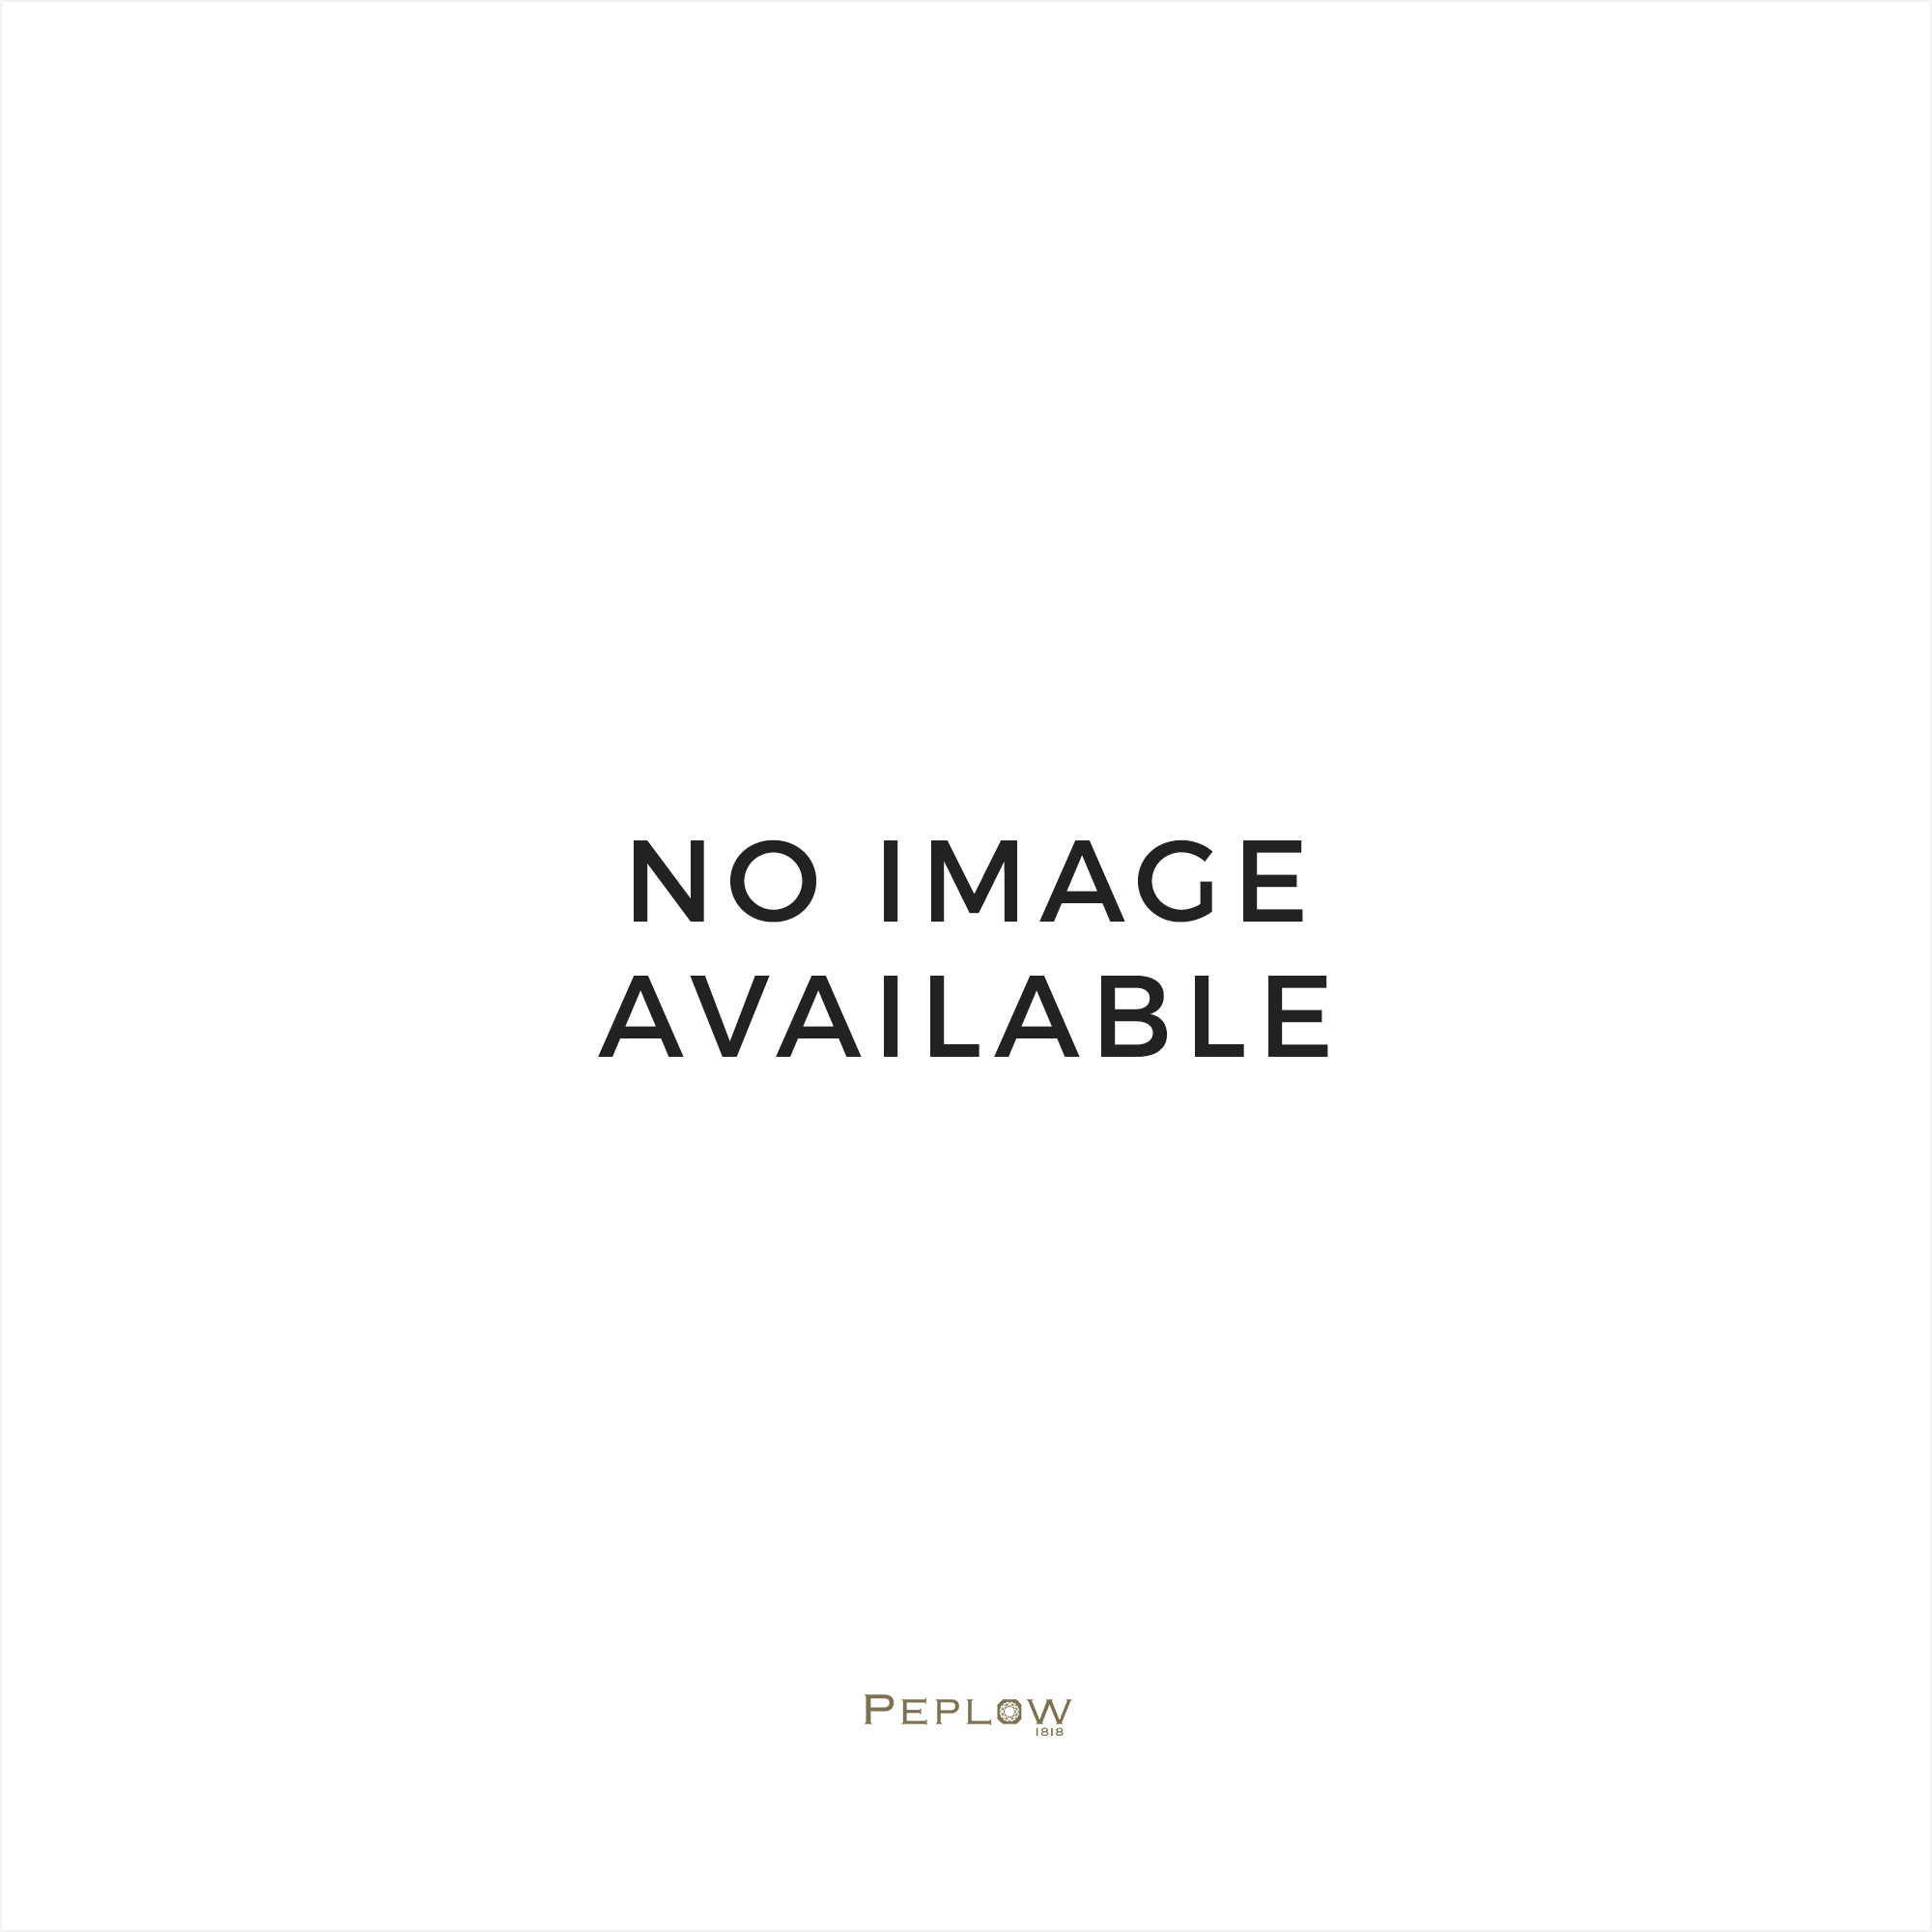 Citizen Watches Red Arrows Limited Edition Chrono Time A-T